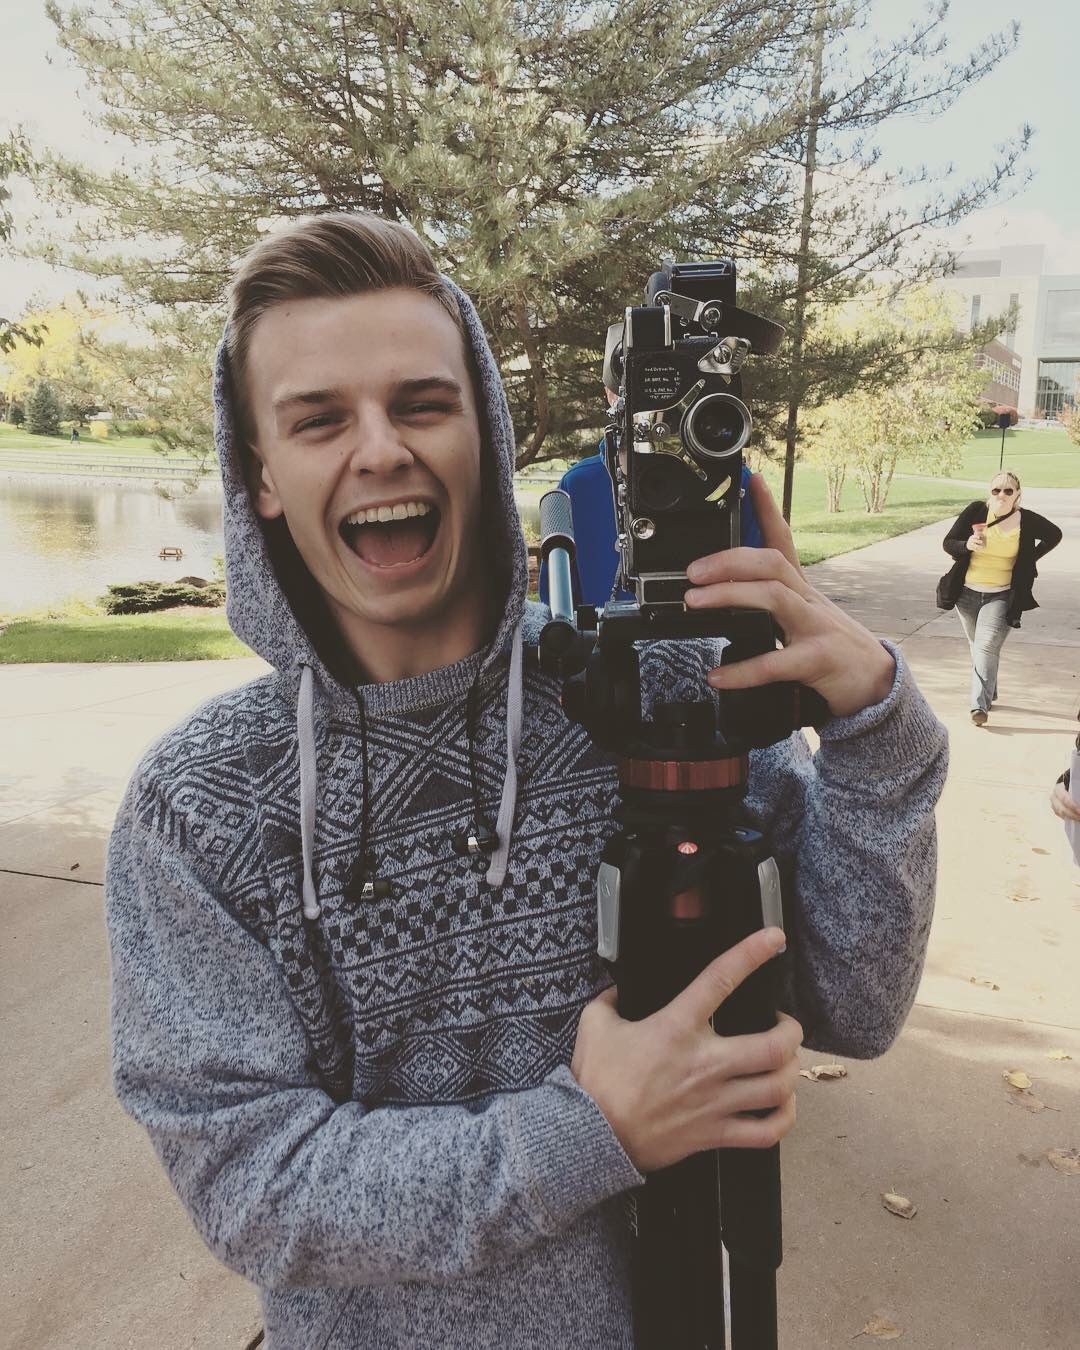 Chad Hilliard is a Grand Valley State University Film & Video graduate who worked as the fall 2018 assistant producer for  Feel Like You Belong . As a student, Chad's focus was in producing, with a goal to bring that skill set to the narrative television industry. Producing is a powerful fit for him since he loves associating with others and making people's stories come to life.